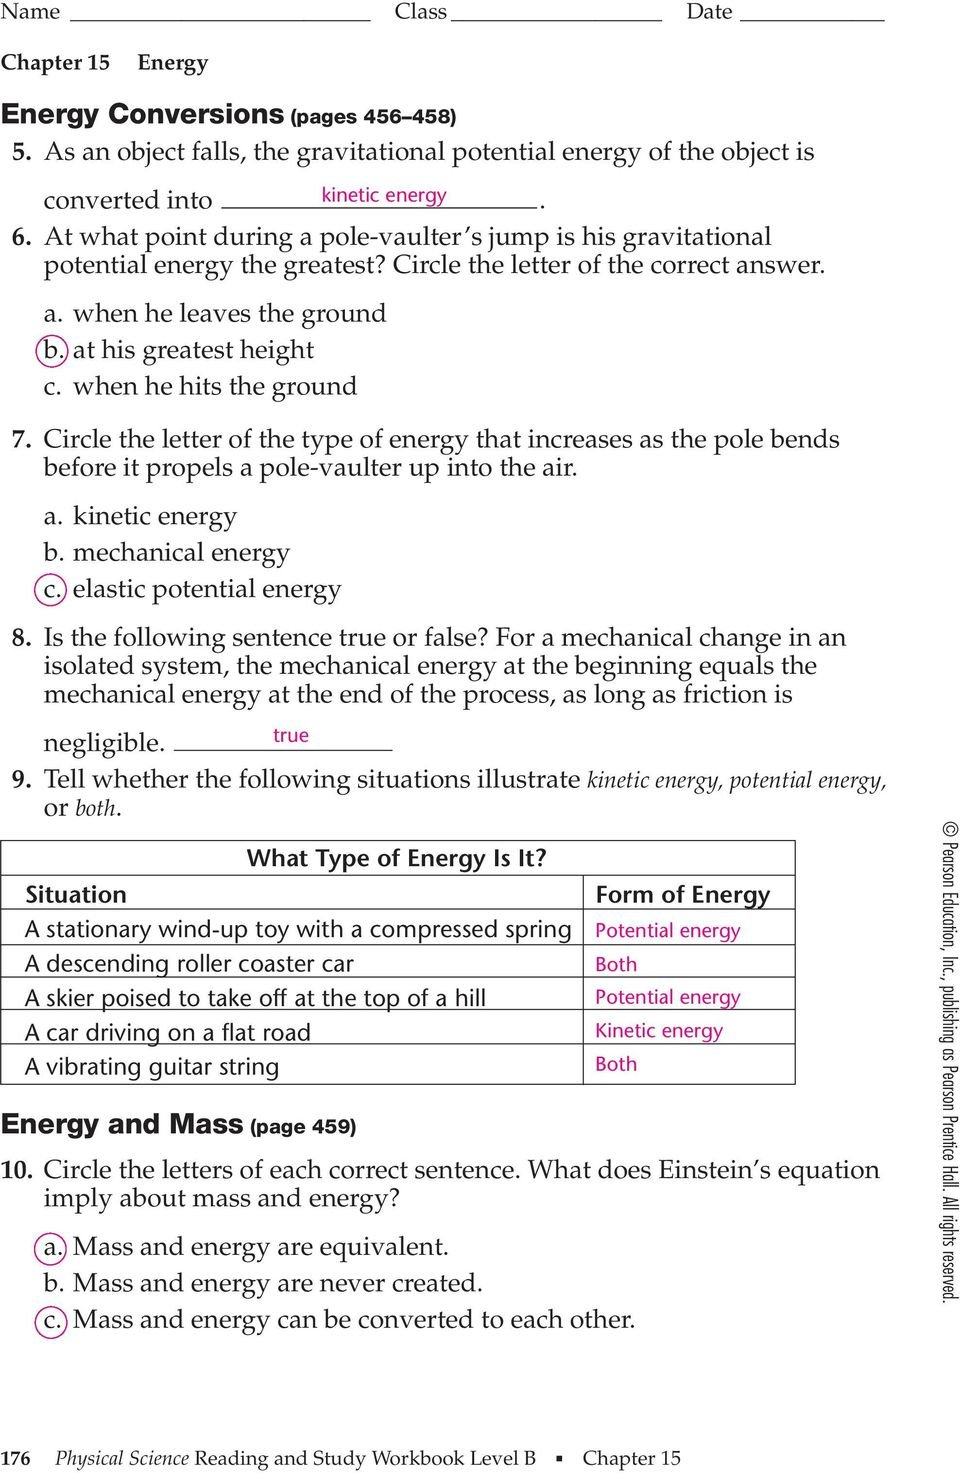 Section 152 Energy Conversion And Conservation Worksheet Answers Along With Energy Conversion And Conservation Worksheet Answers 5 2